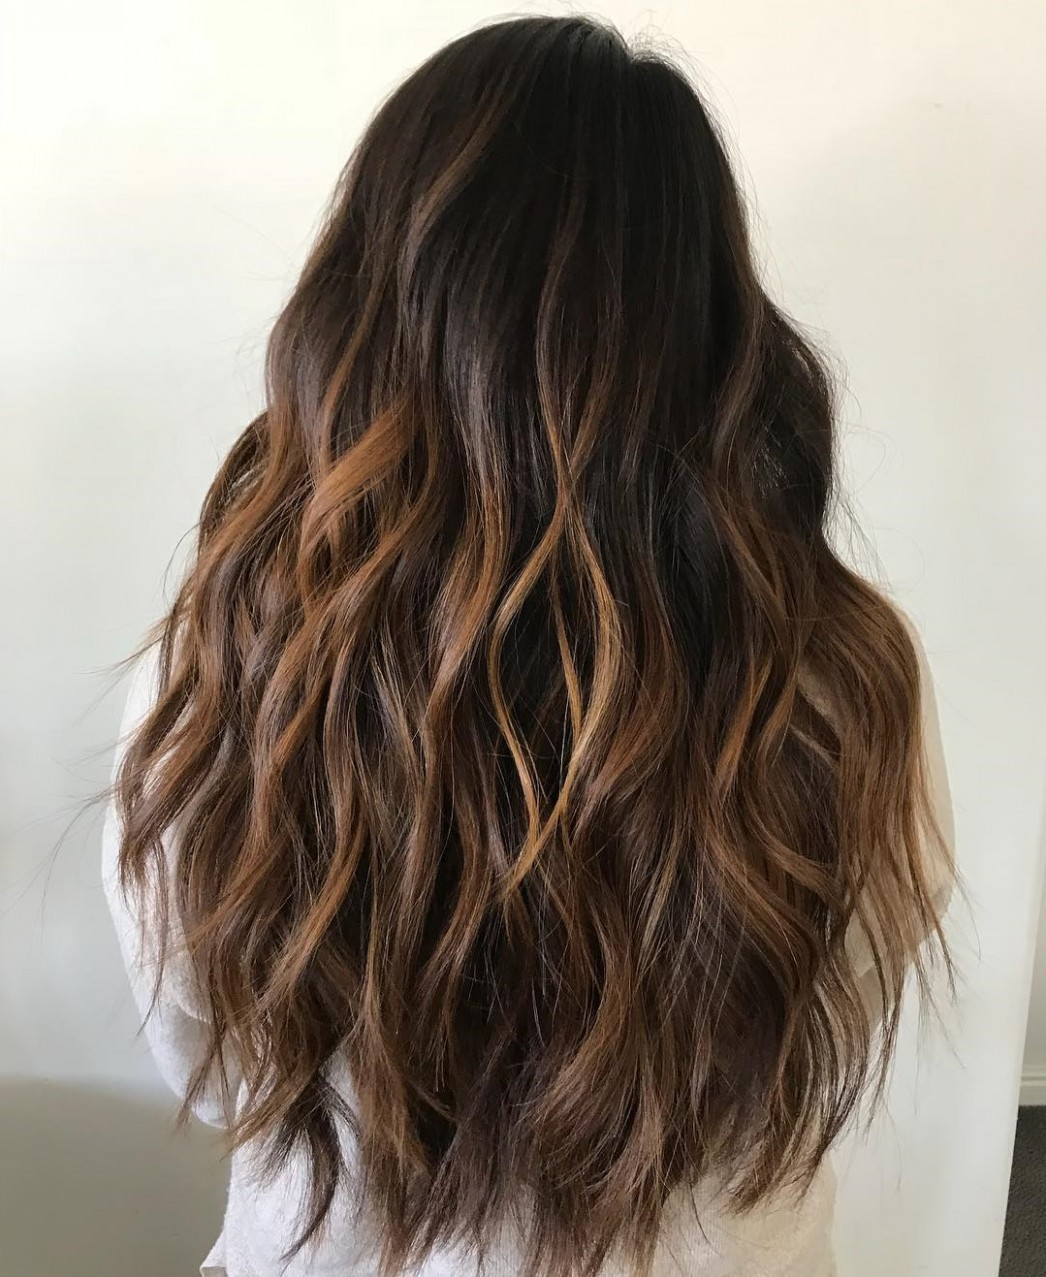 12 Haircuts For Thick Wavy Hair To Shape And Alleviate Your Haircuts For Long Thick Wavy Hair